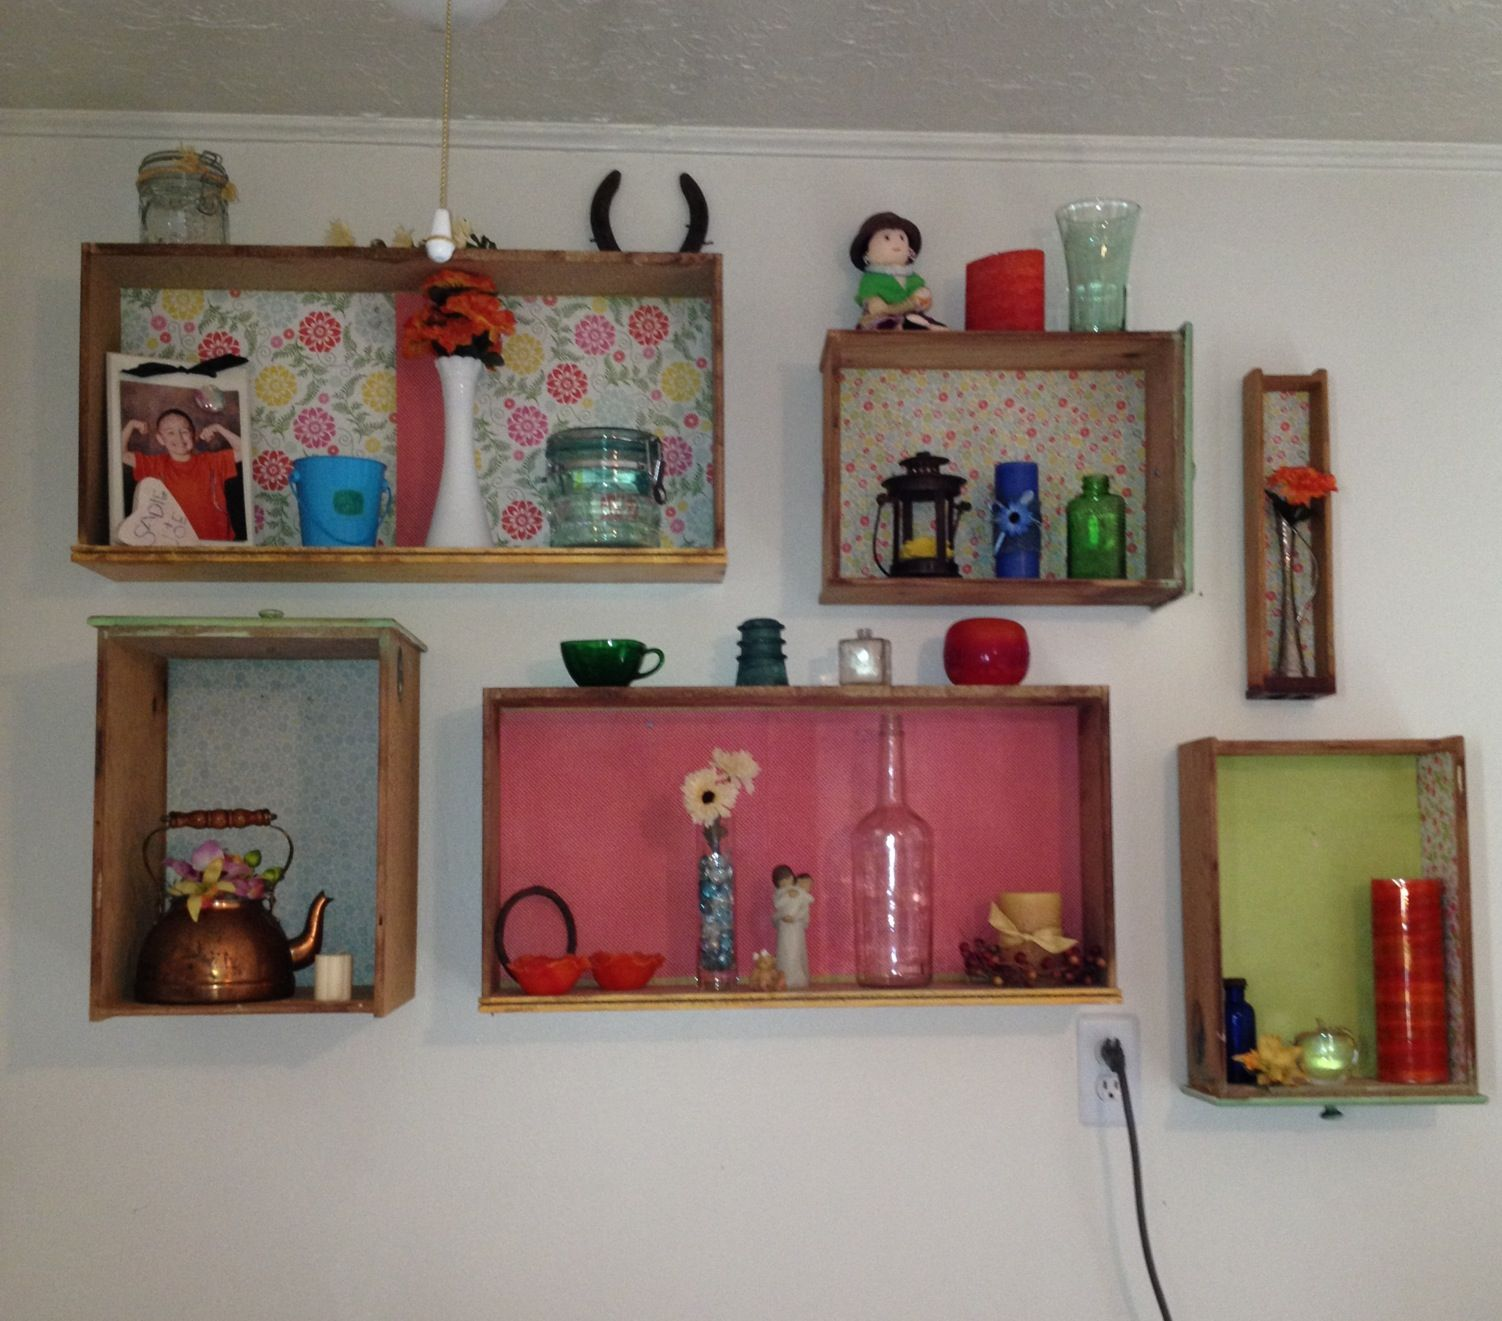 Old Drawers Made Into Cute Shelves To Display All Your Little Nick Nacks